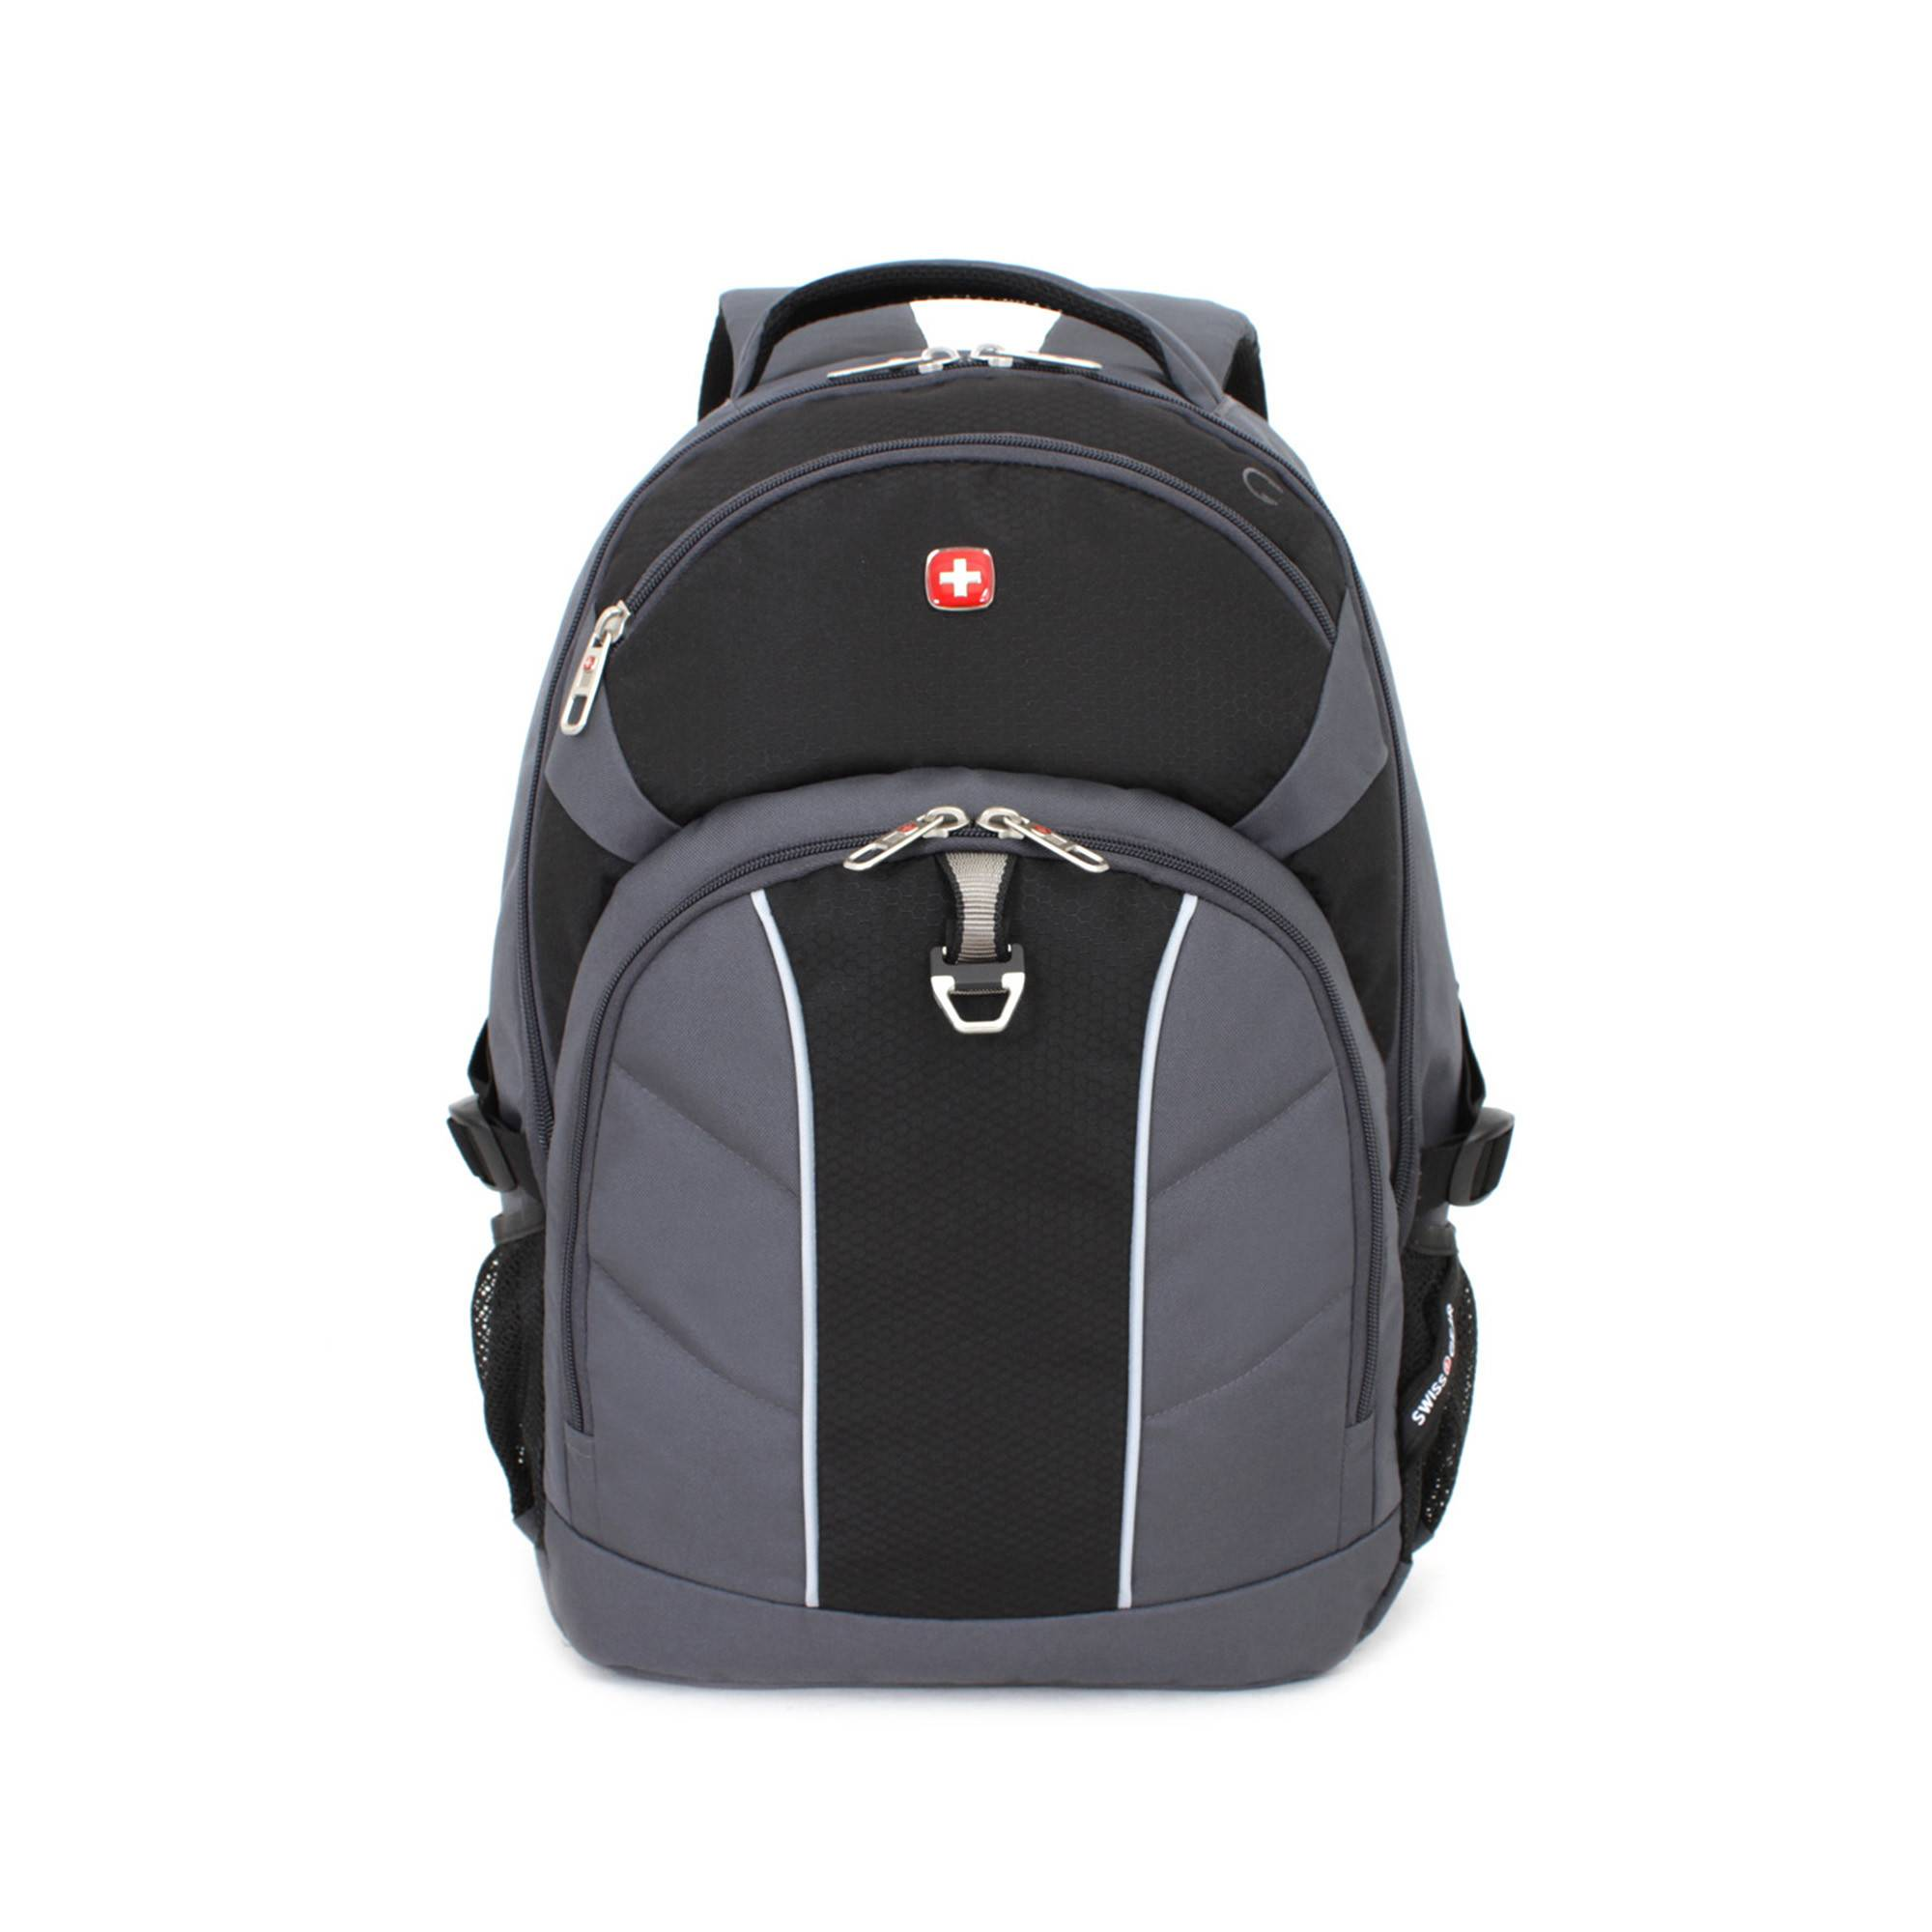 8cab8d3d50 swiss gear backpack cheap   OFF78% The Largest Catalog Discounts